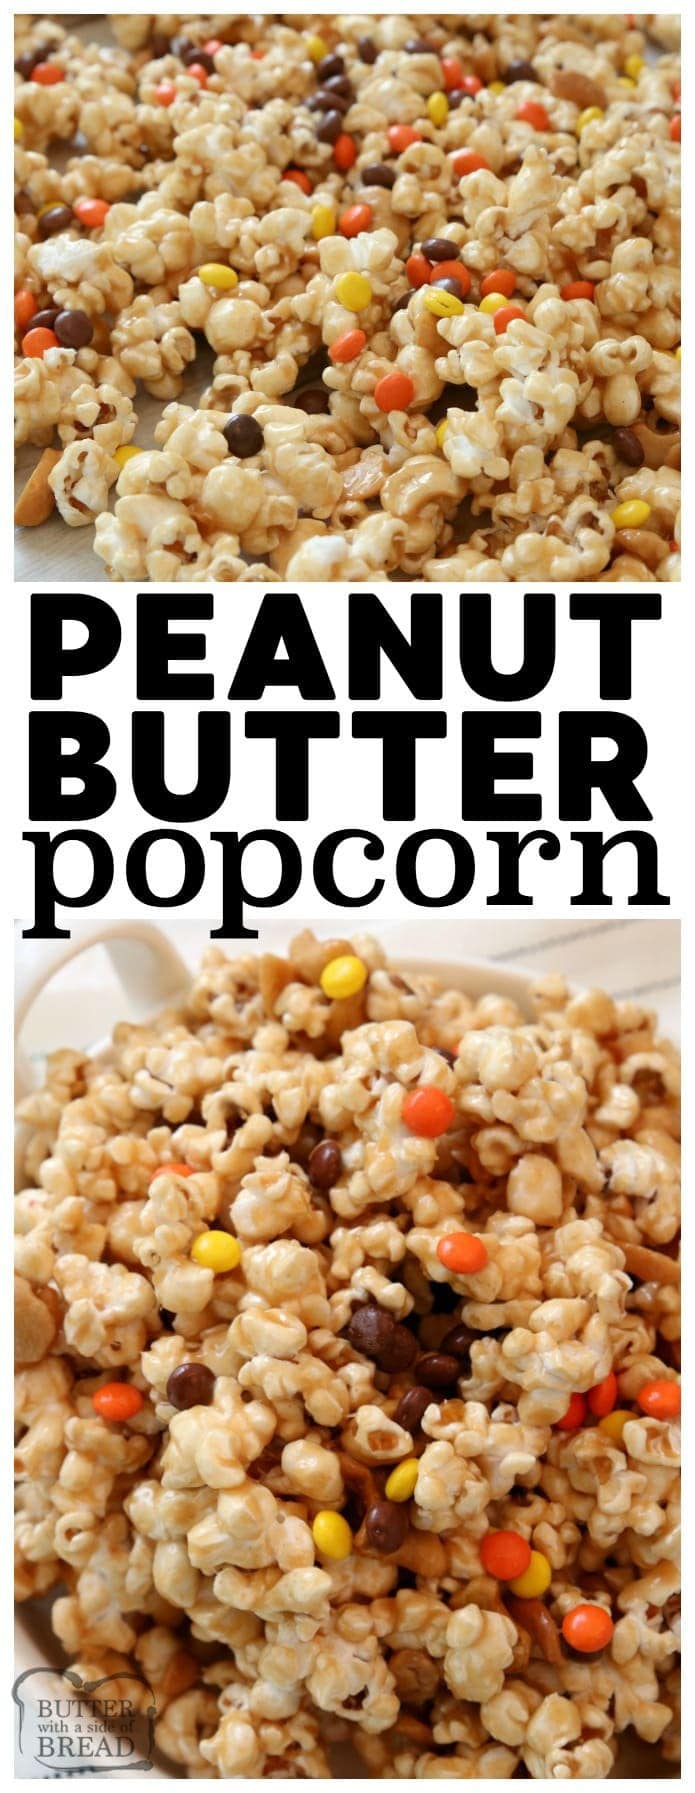 Peanut Butter Popcorn is perfect for peanut butter lovers! Tasty sweet & salty #popcorn #recipe that's ready in under 20 minutes. Peanut Butter Popcorn is great for parties, game day or any day! #PeanutButter popcorn recipe from Butter With A Side of Bread #party #games #food #snacks